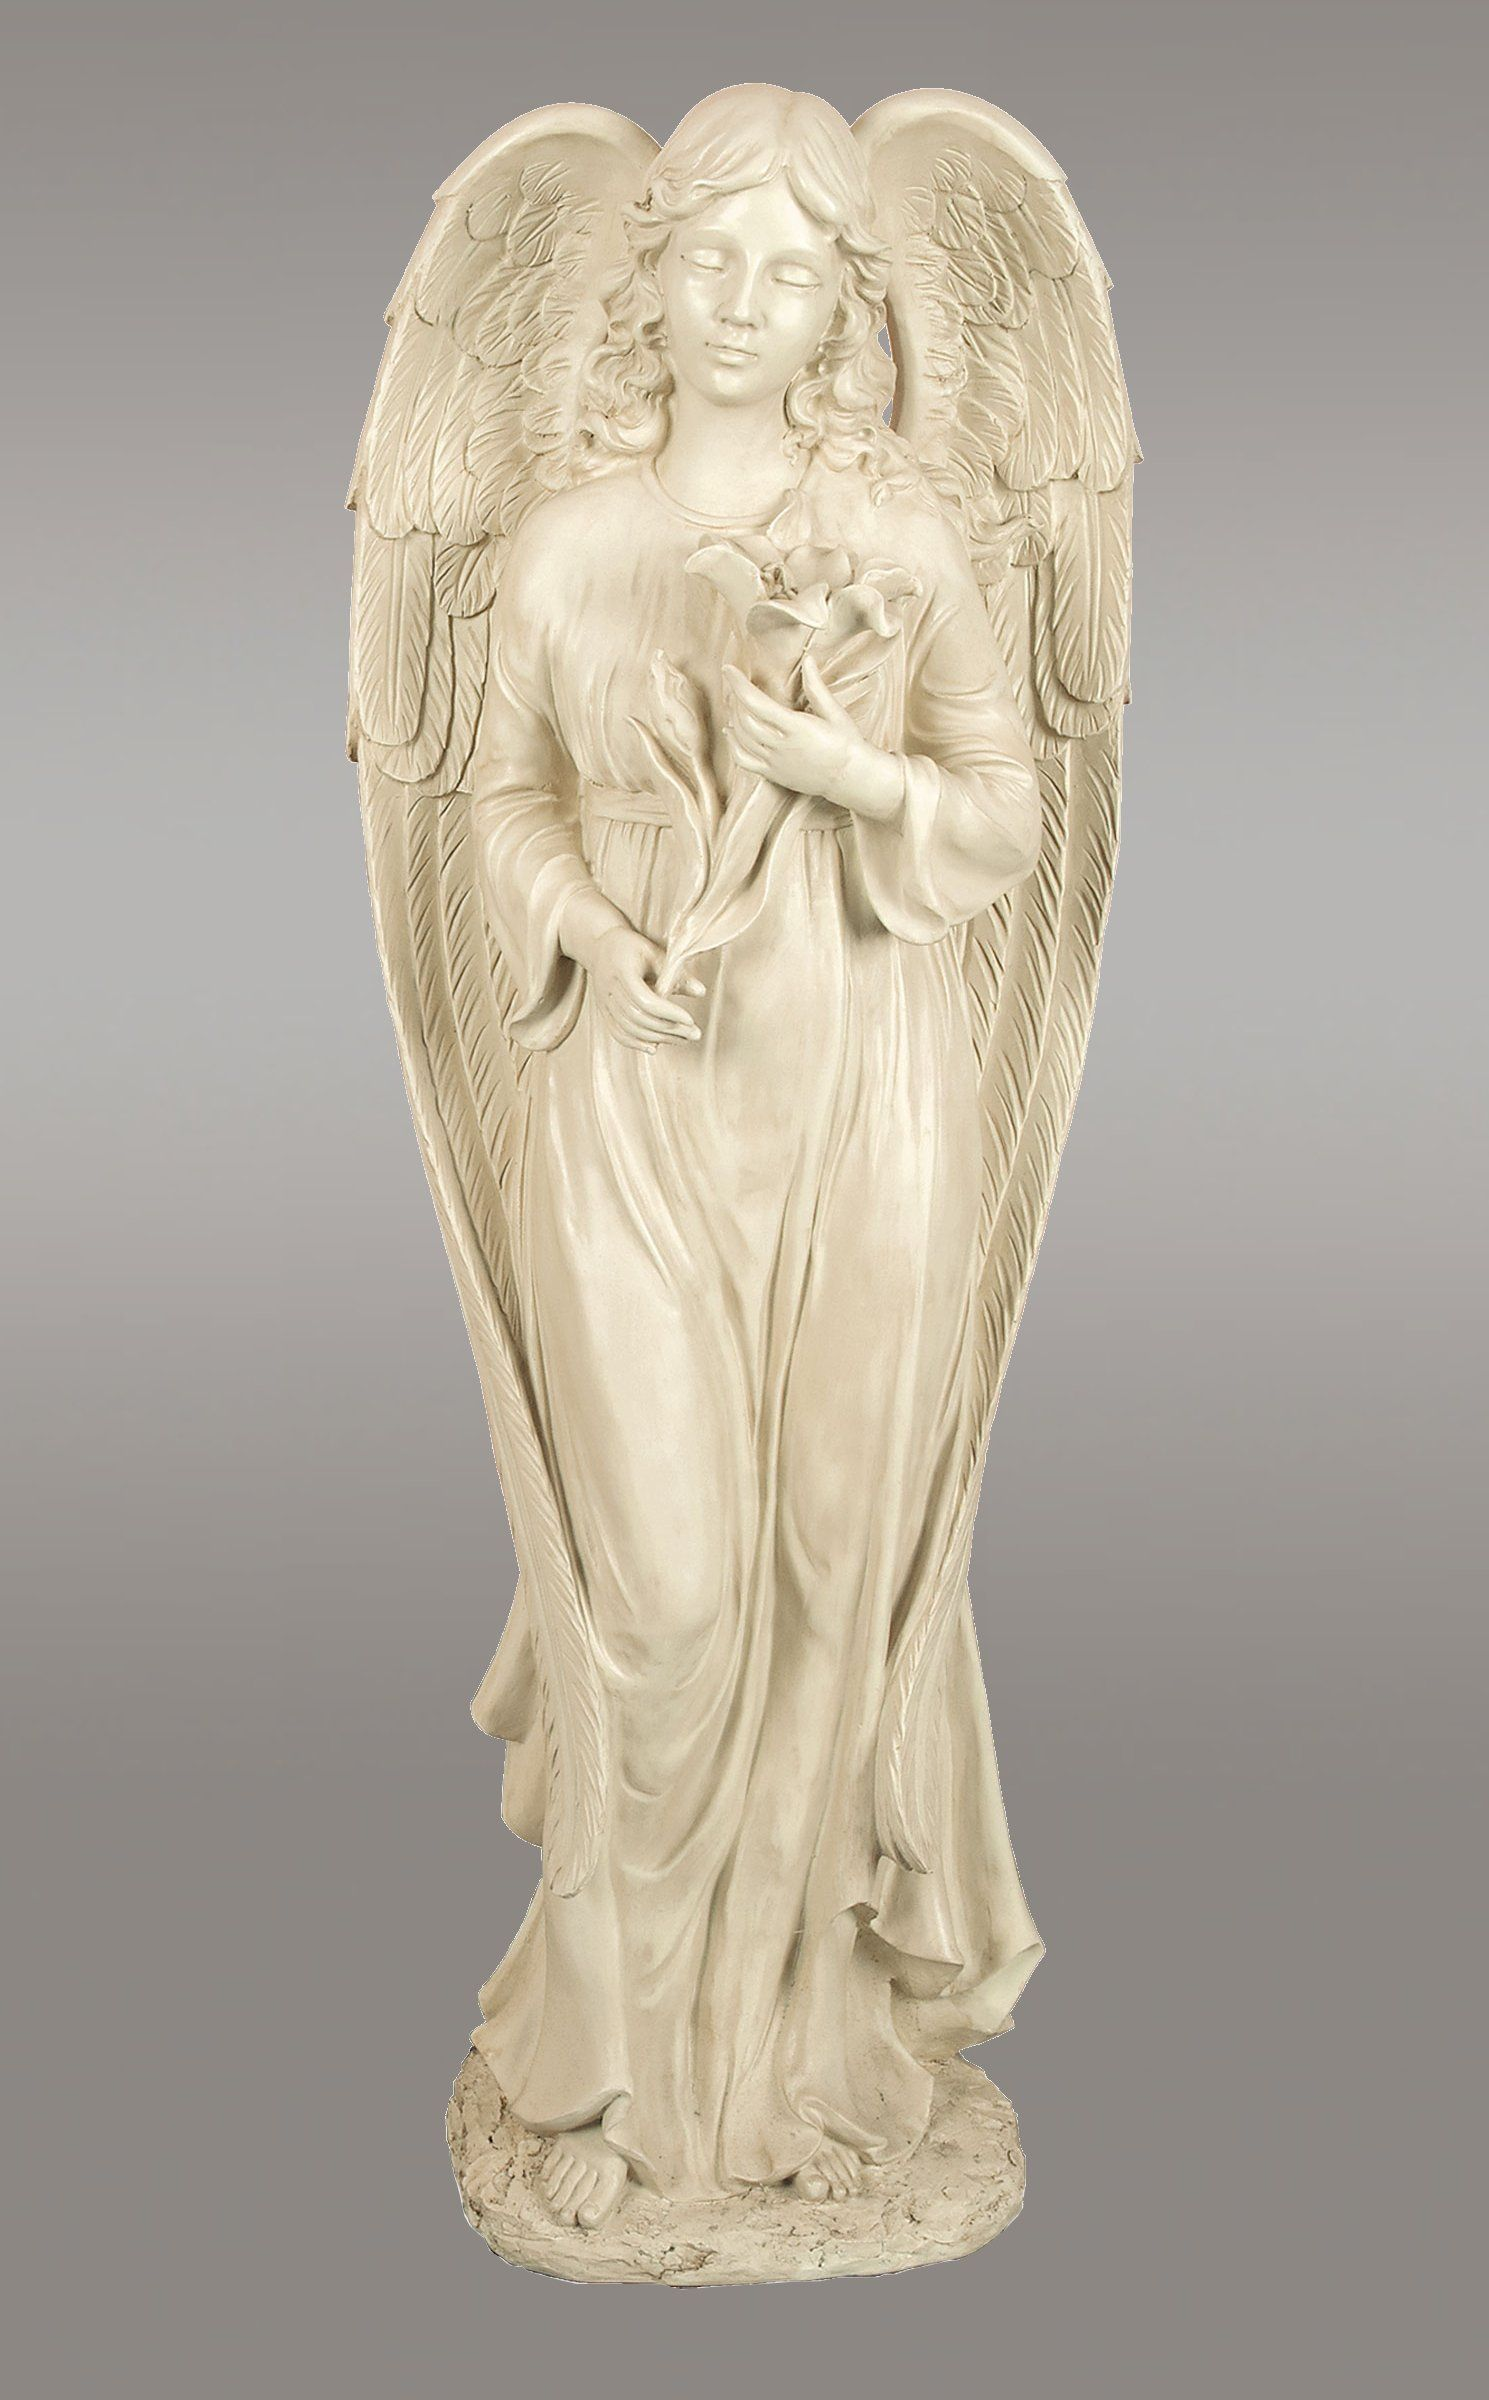 Divine Grace Garden Angel Statue Buy Angel Statues Here Over 4 Feet Tall Beautiful Solid Ivory Appearance By Angel Garden Statues Statue Angel Sculpture